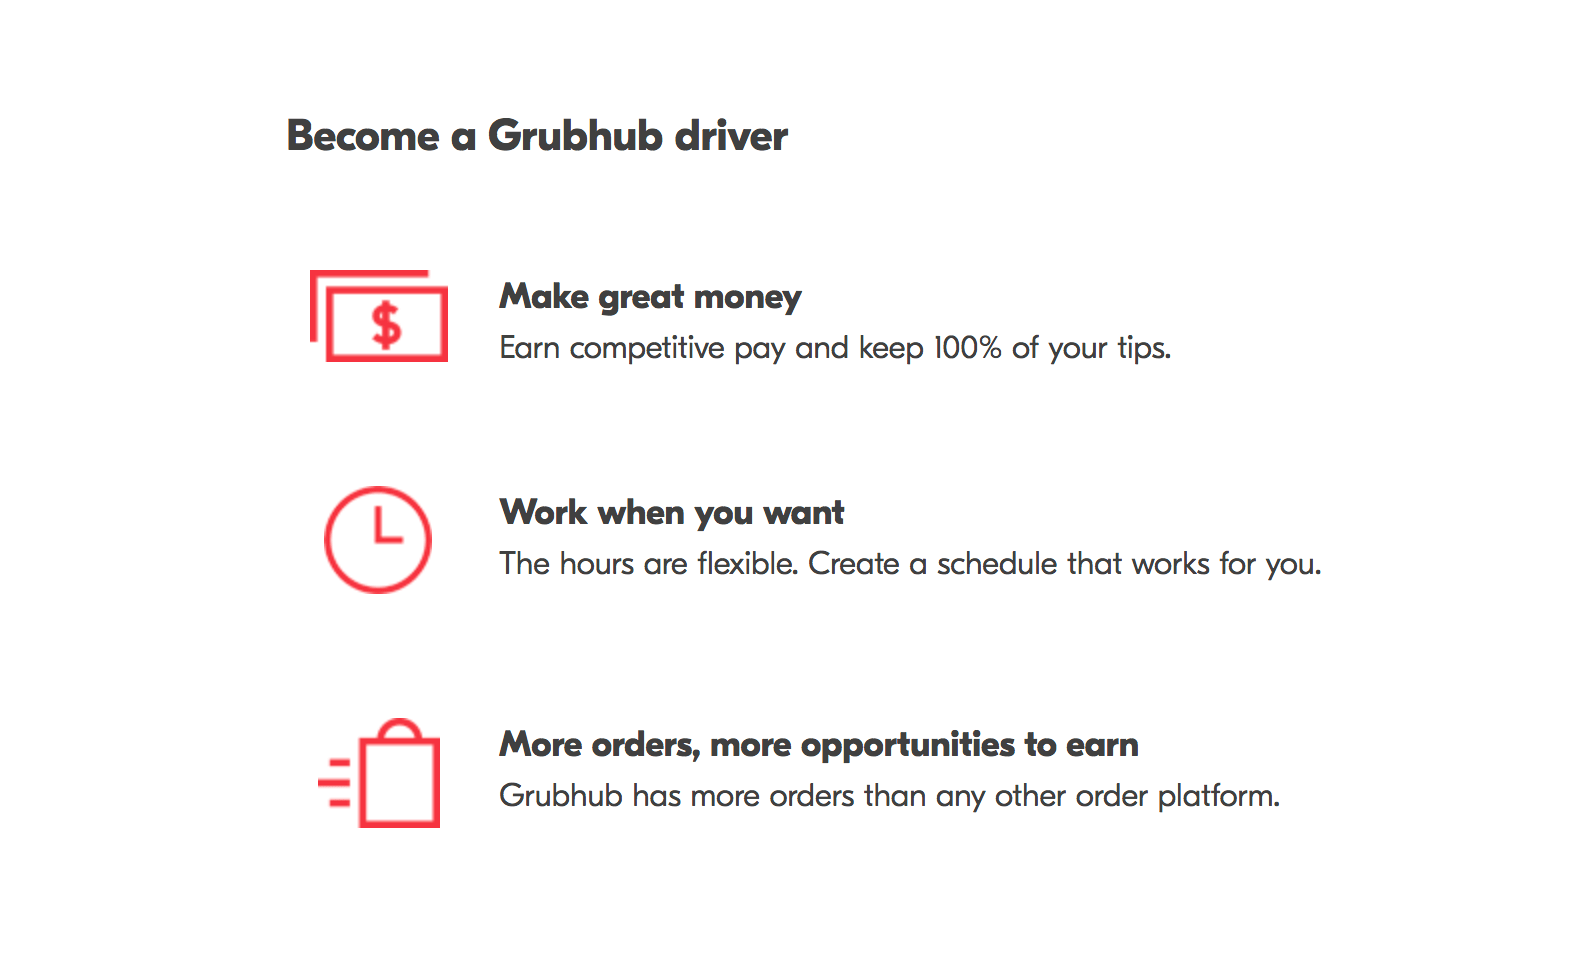 Become a Grubhub driver graphic